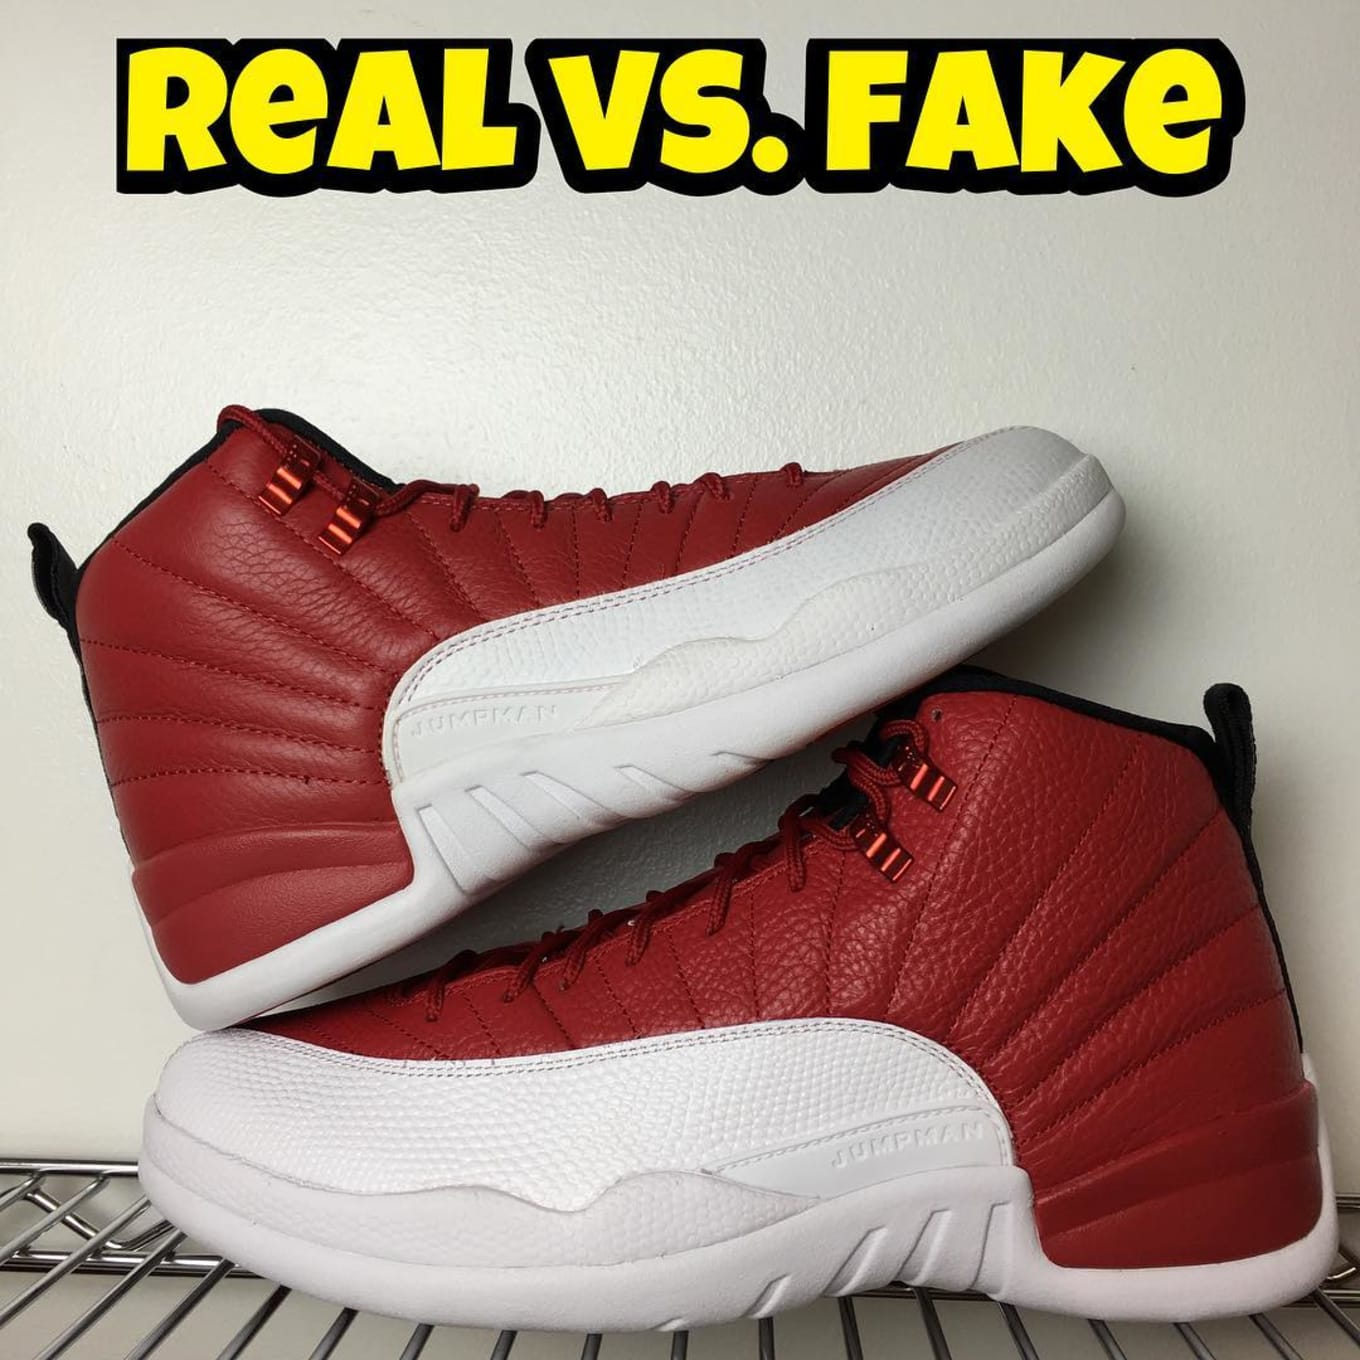 c71ce55304a2 Air Jordan XII 12 Gym Red Real Fake Legit Check